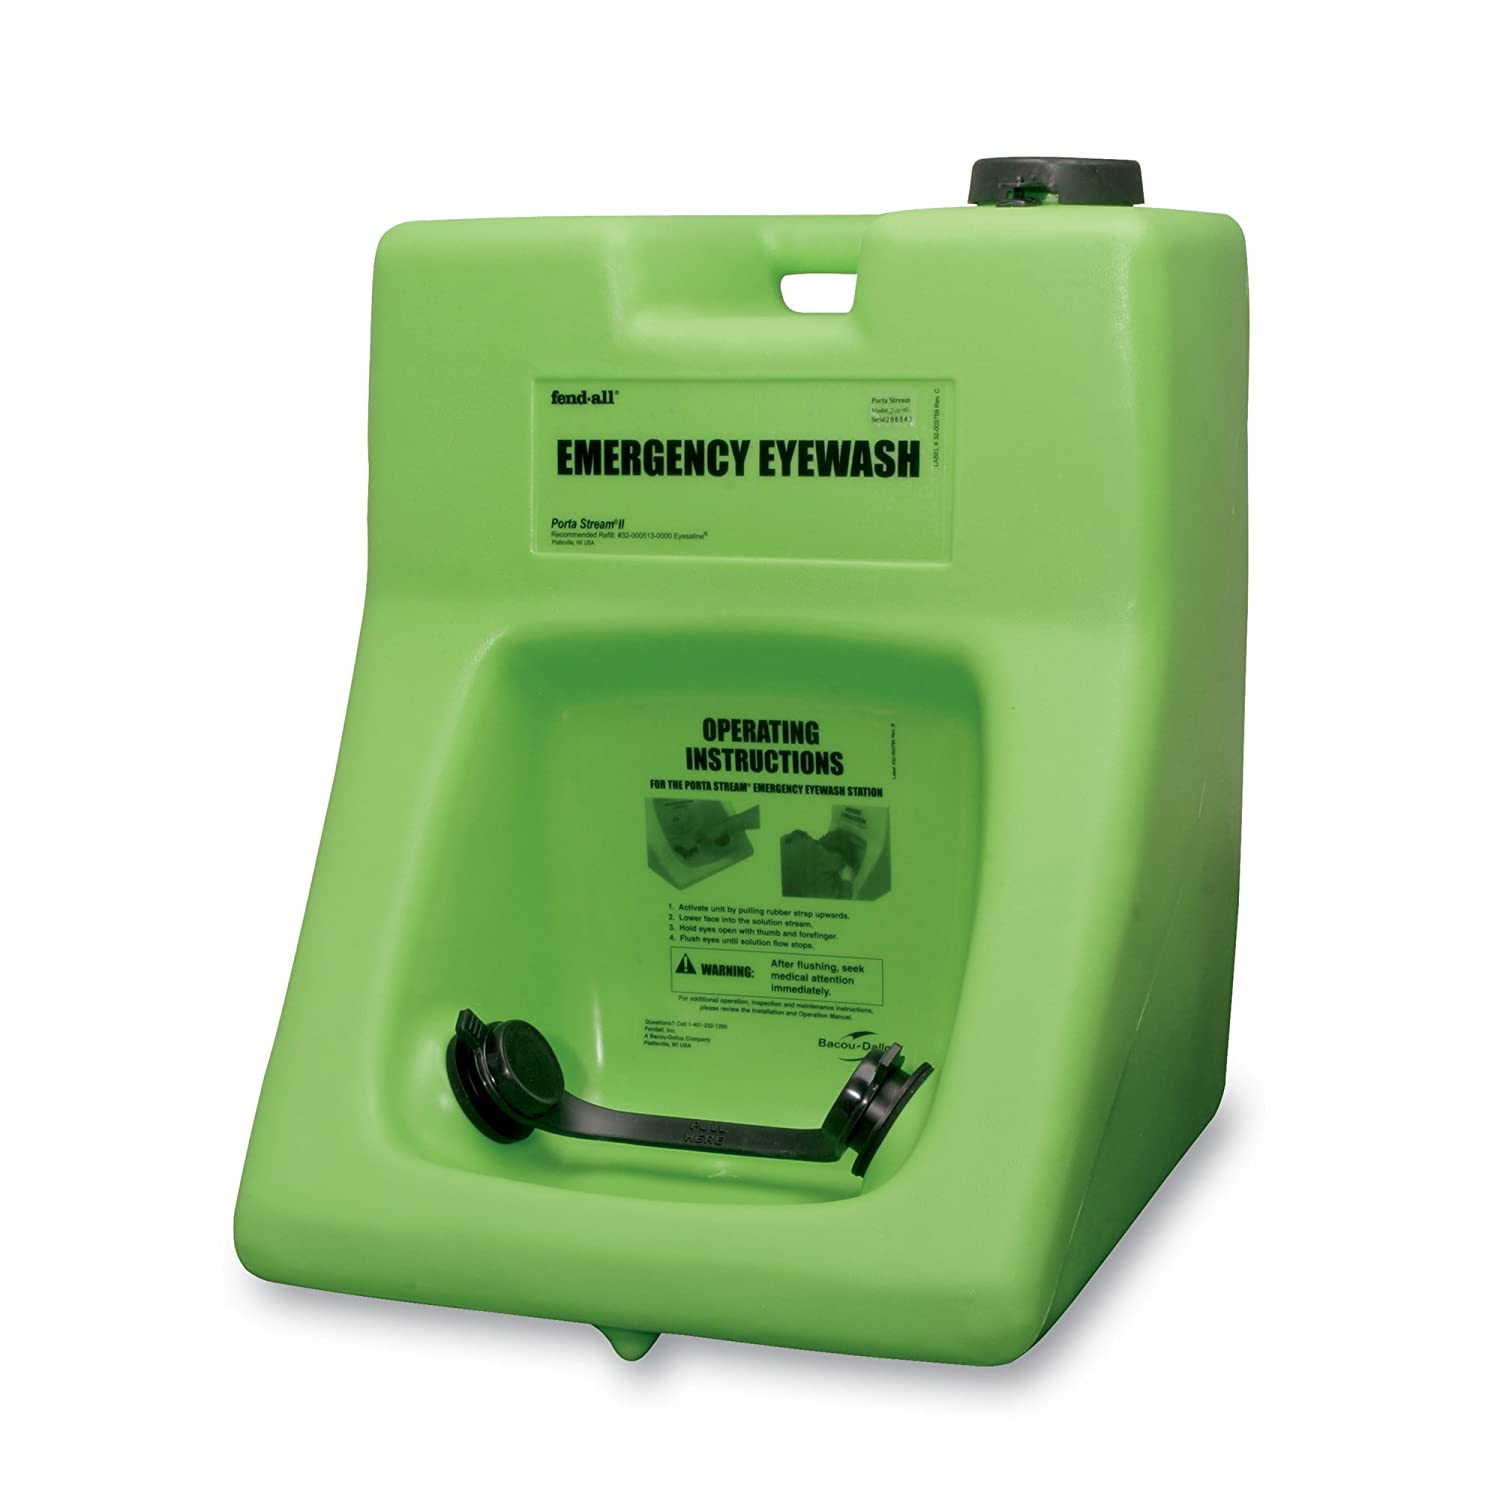 Image of Fendall Porta Stream II 16-Gallon (60.5 L) Refillable Primary Emergency Eye Wash Station (with 8 oz. / 237 ml Water Additive)